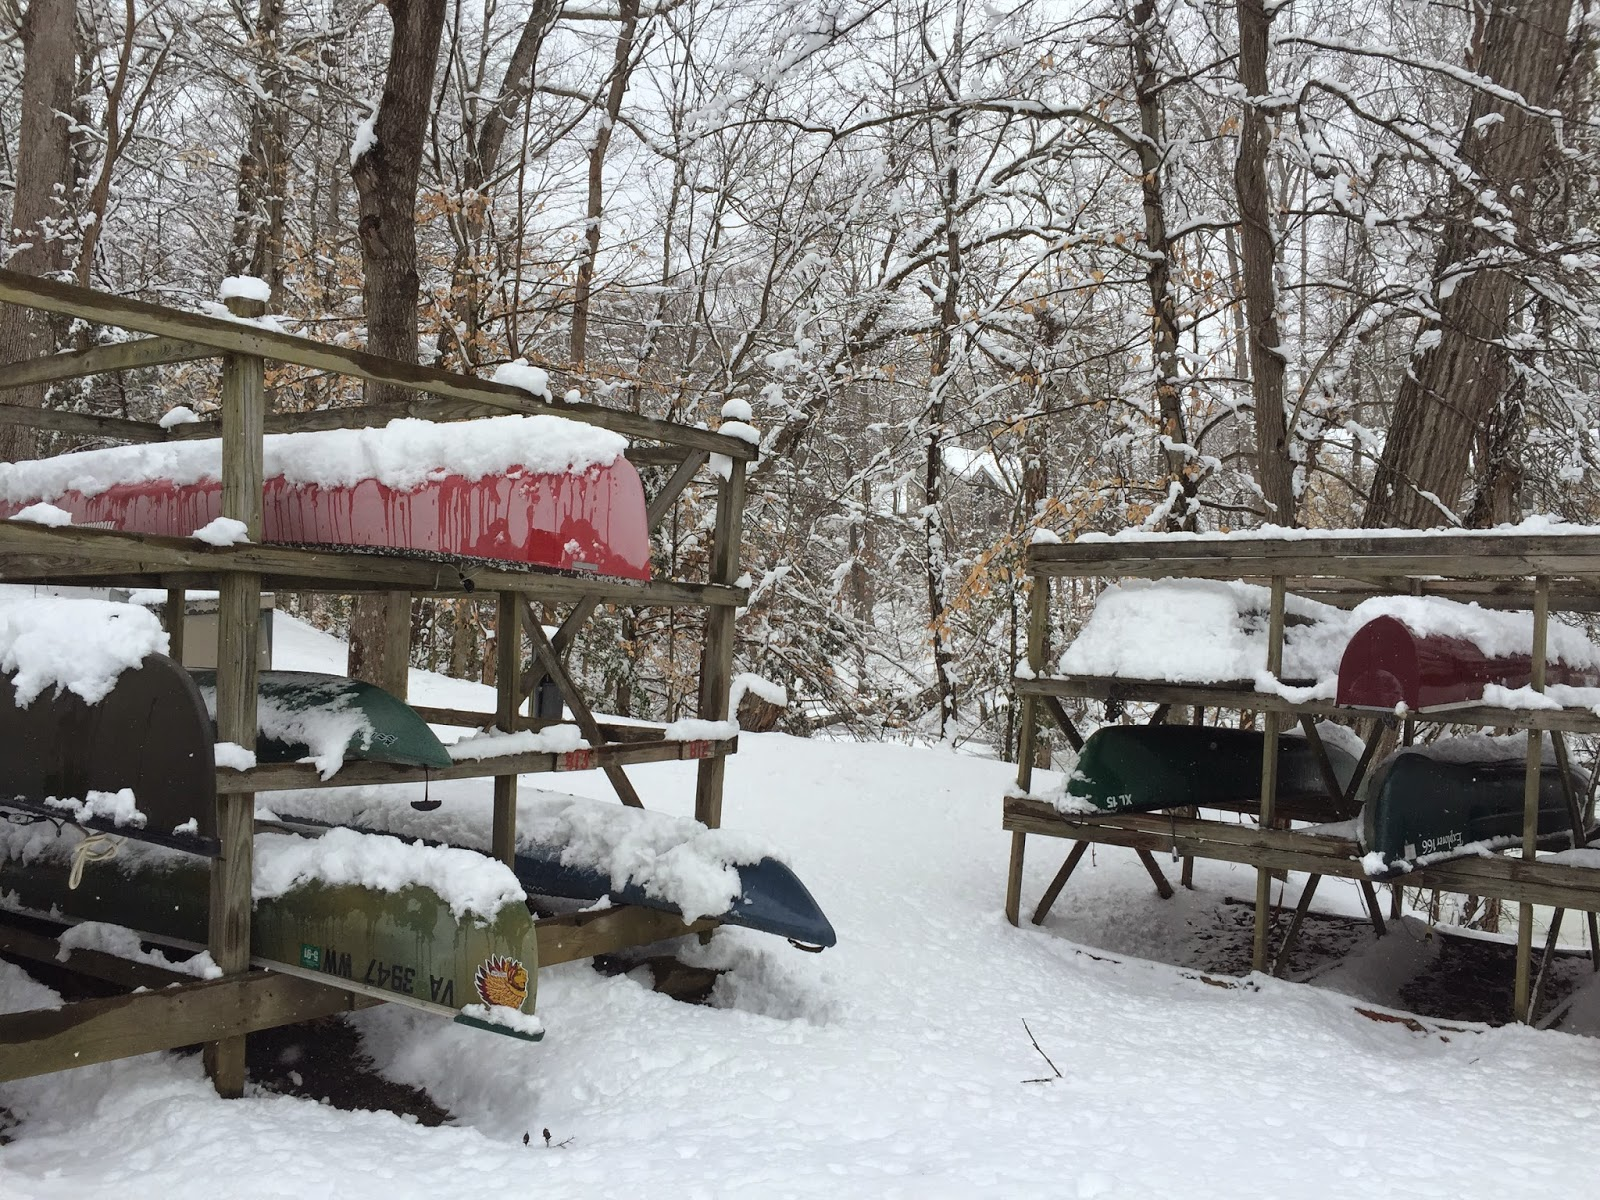 snow, winterscape, canoes, kingsmill, virginia, winter